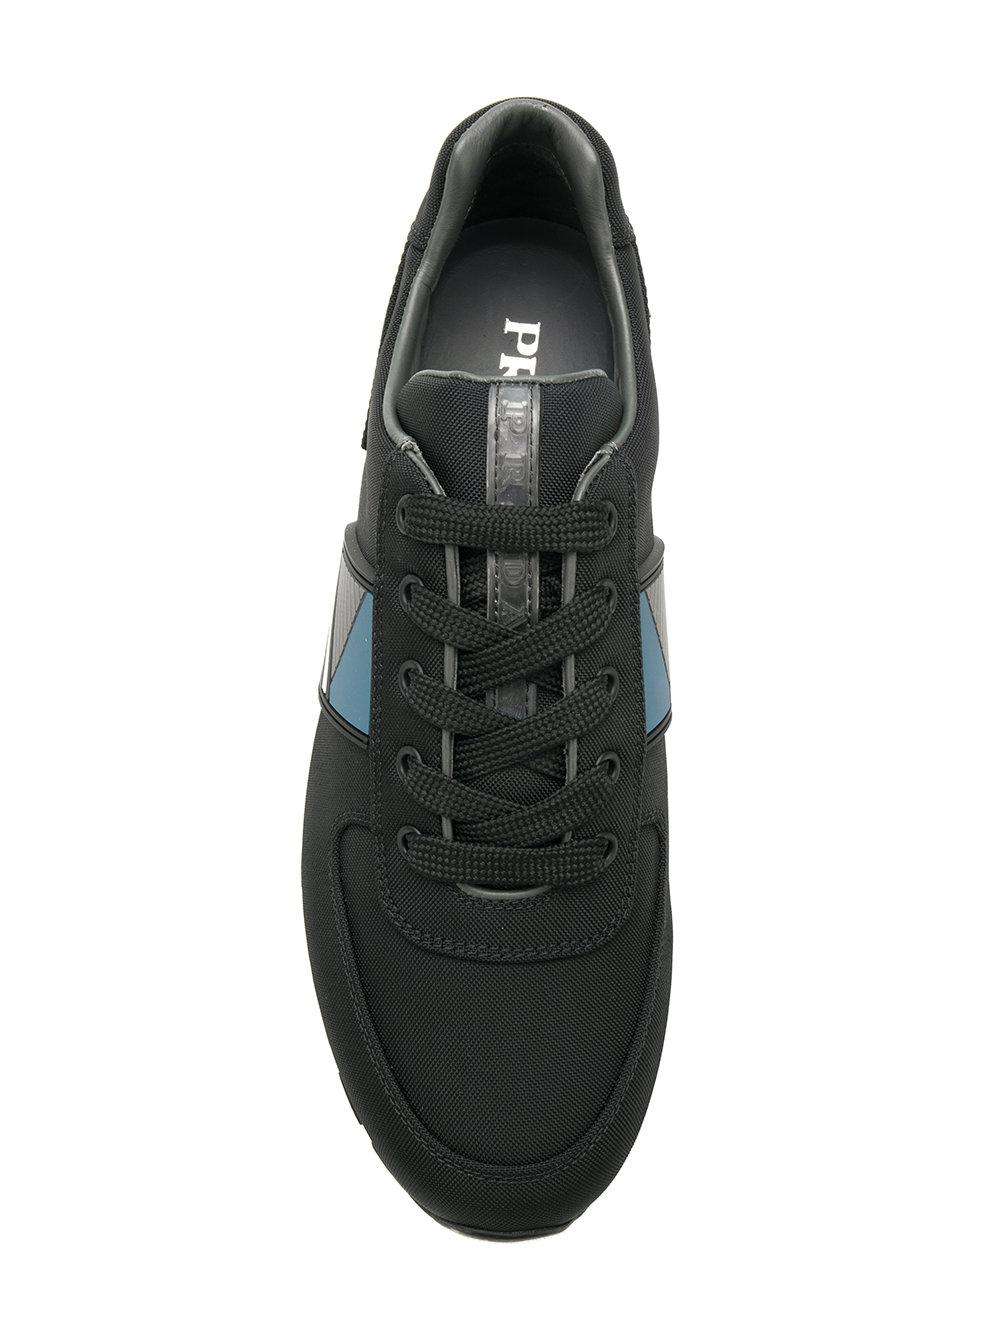 new style bd580 25b99 prada-Black-Side-Logo-Lace-up-Sneakers.jpeg